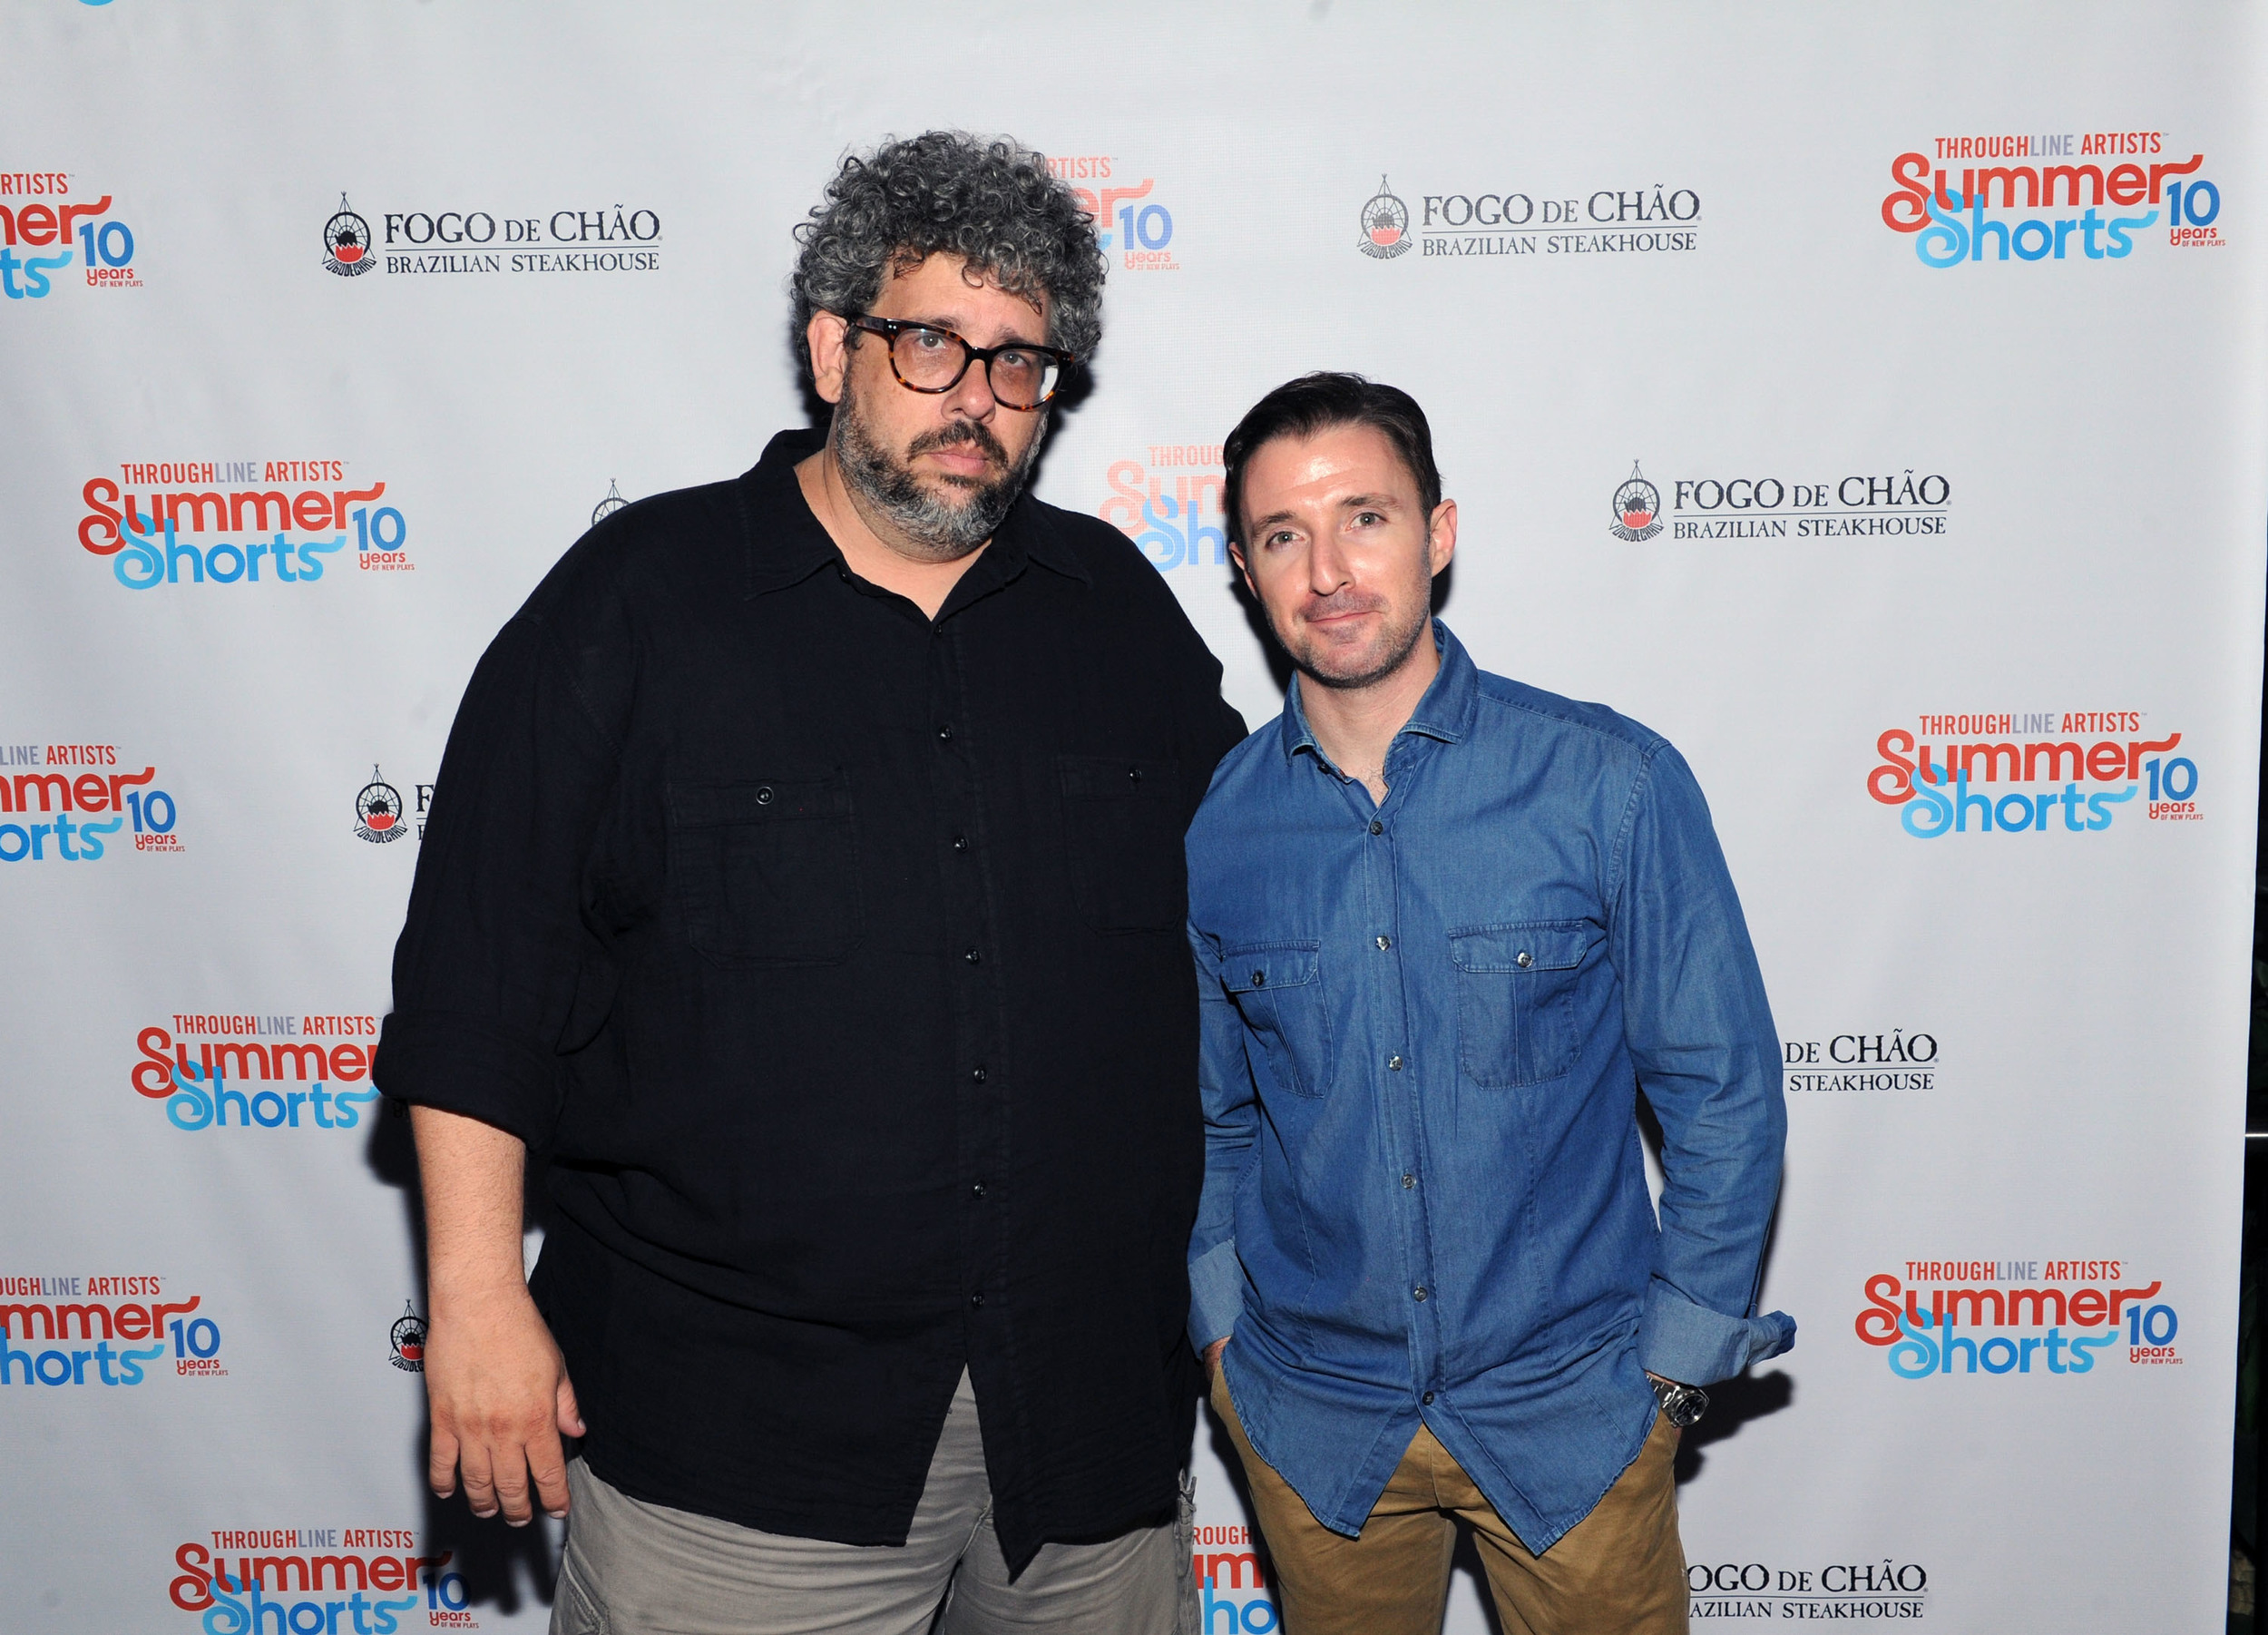 Neil LaBute and J.J. Kandel